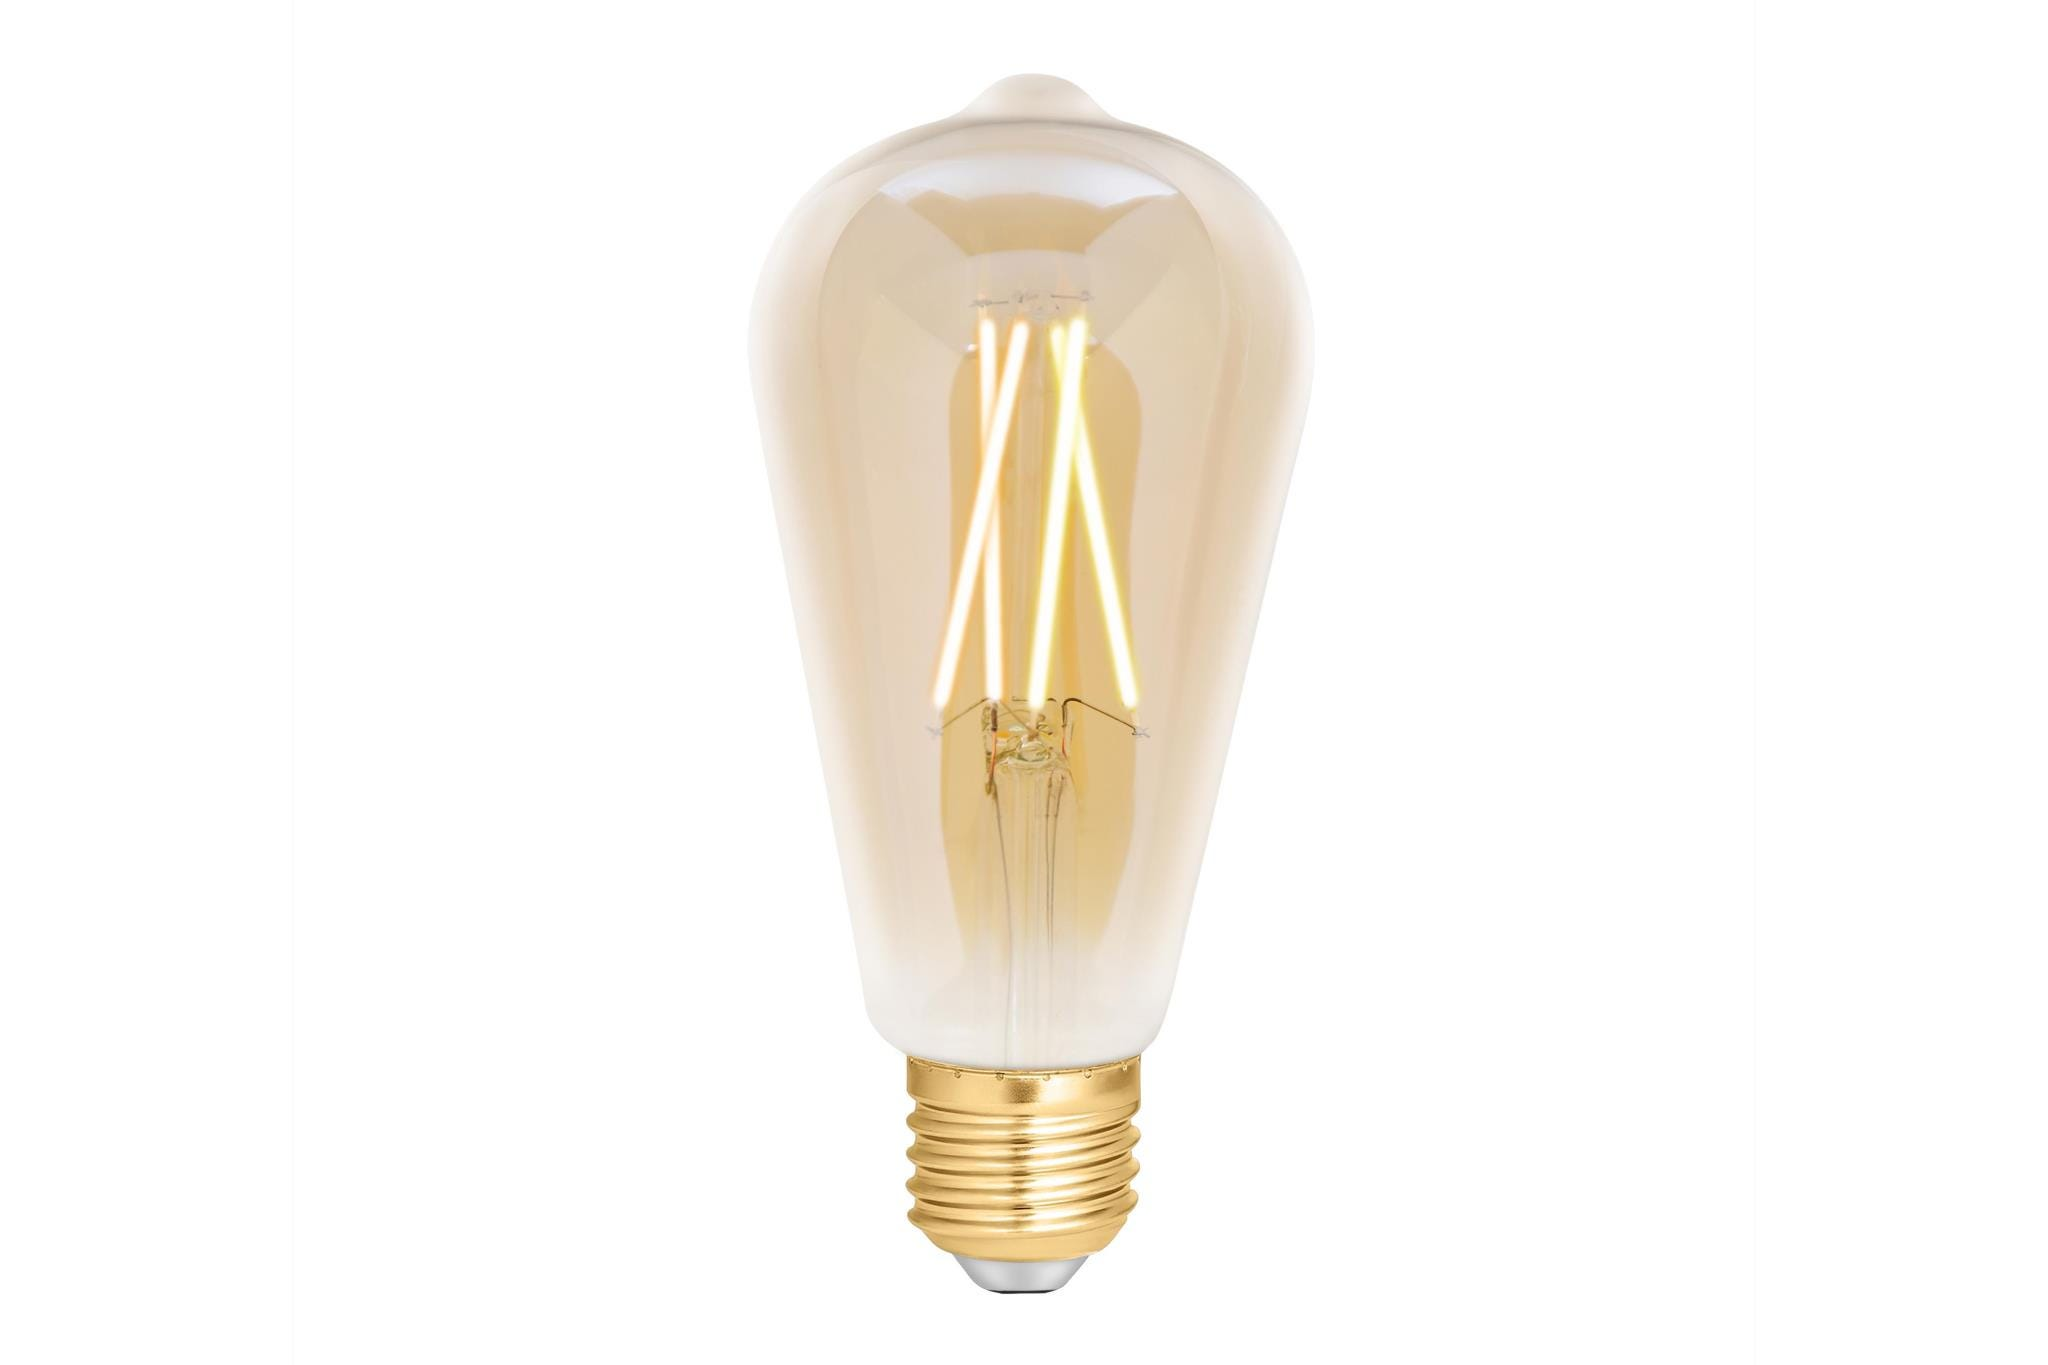 4lite WiZ Connected ST64 Edison Filament LED Smart Bulb Amber White Dimmable WiFi  - E27 Screw